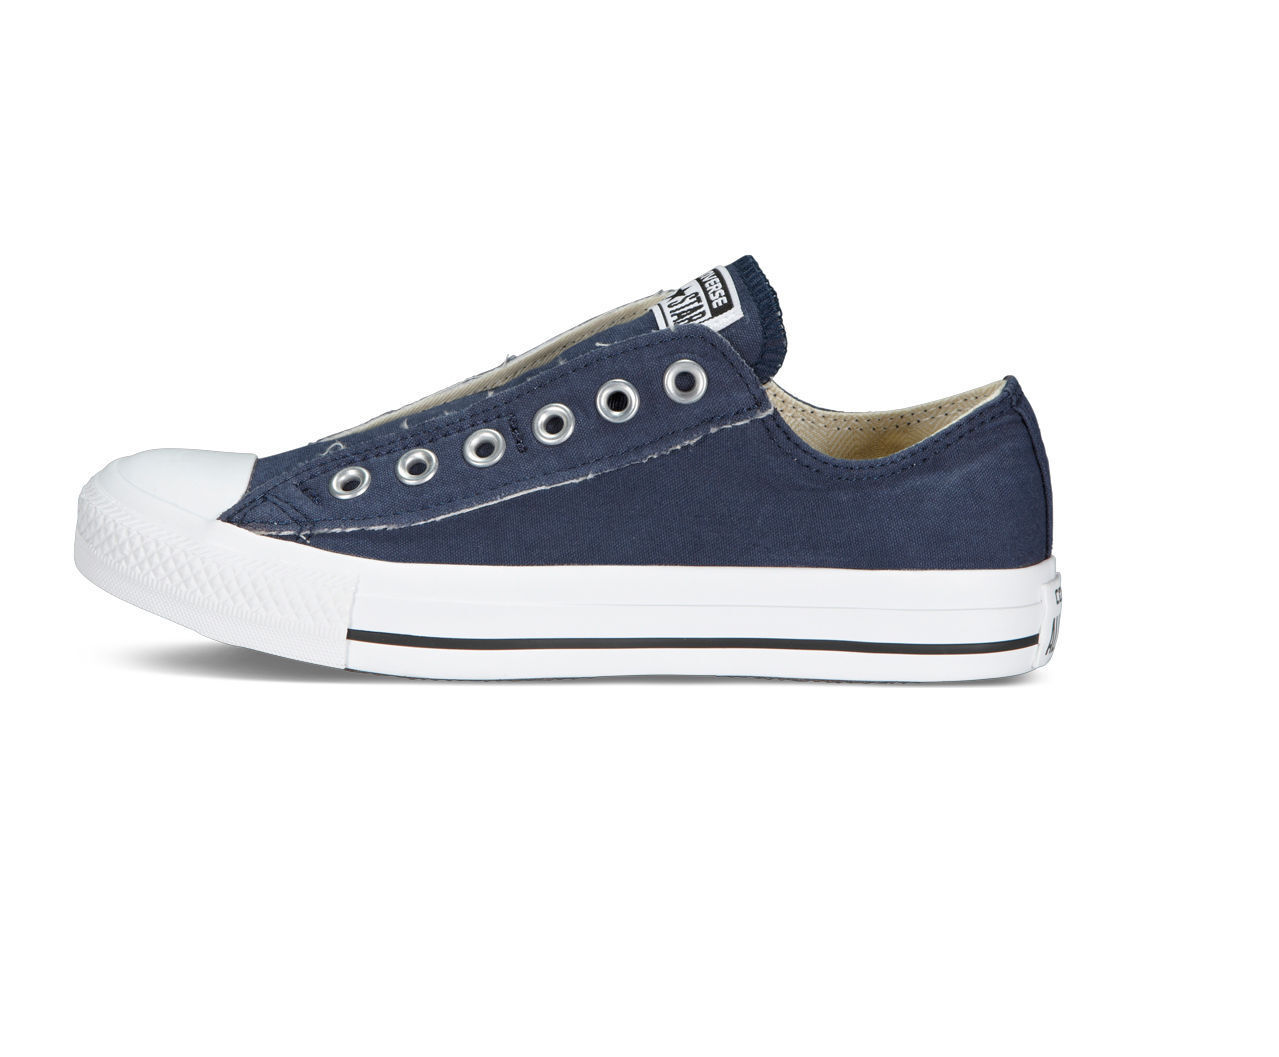 Chuck Taylor All Star 1T156 OX Navy CT slip on OX 1T156 converse unisex fahion sneakers df74ec